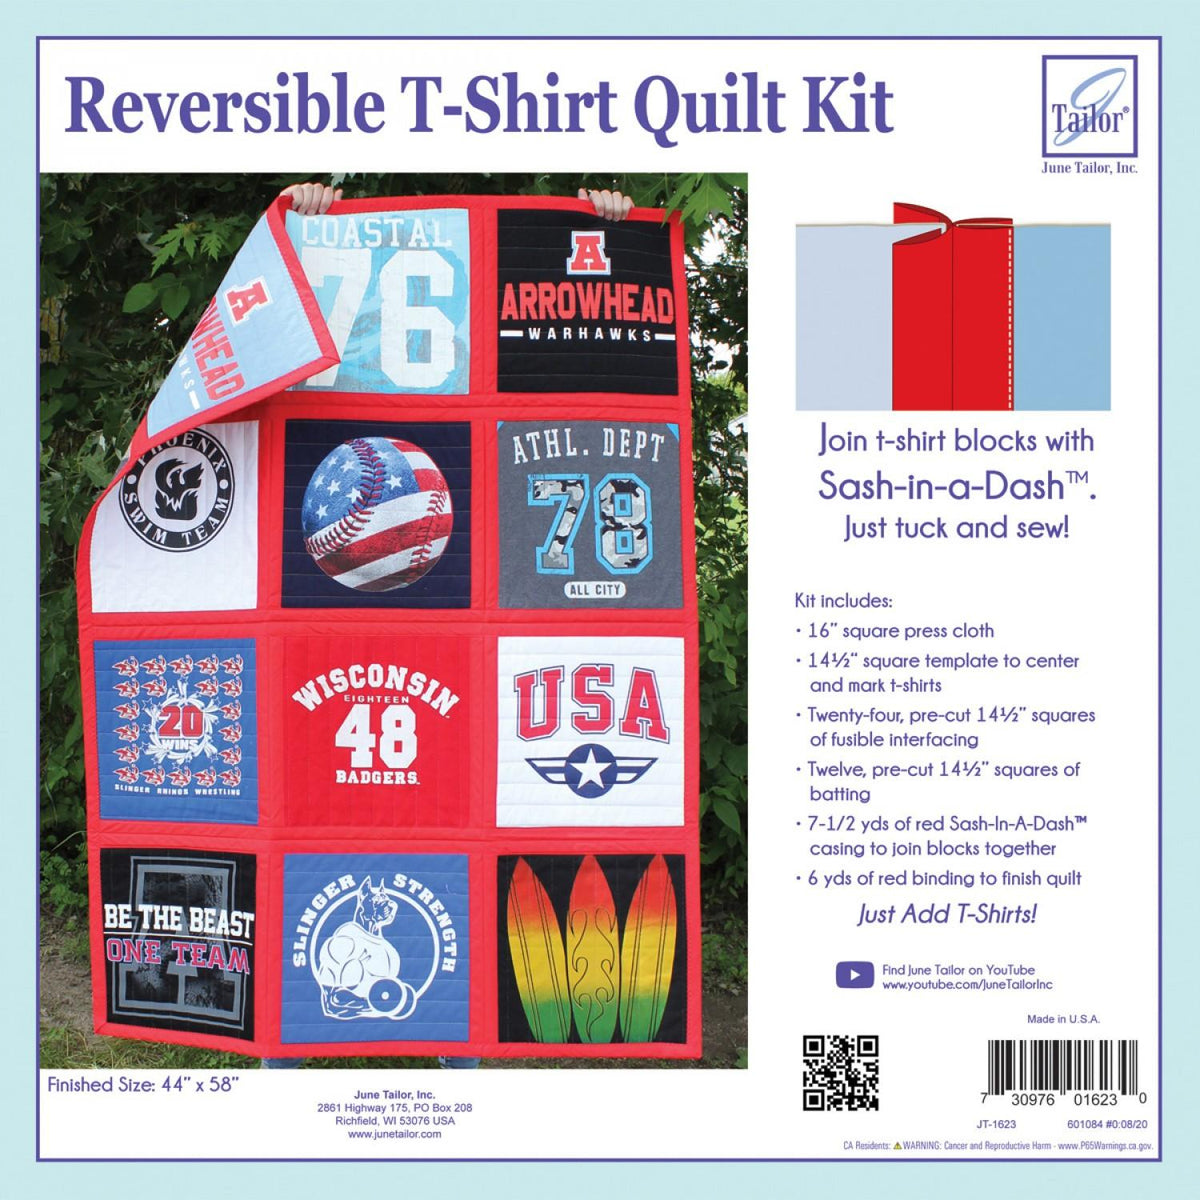 Reversible T-Shirt Quilt Kit Sash-In-A-Dash - RED